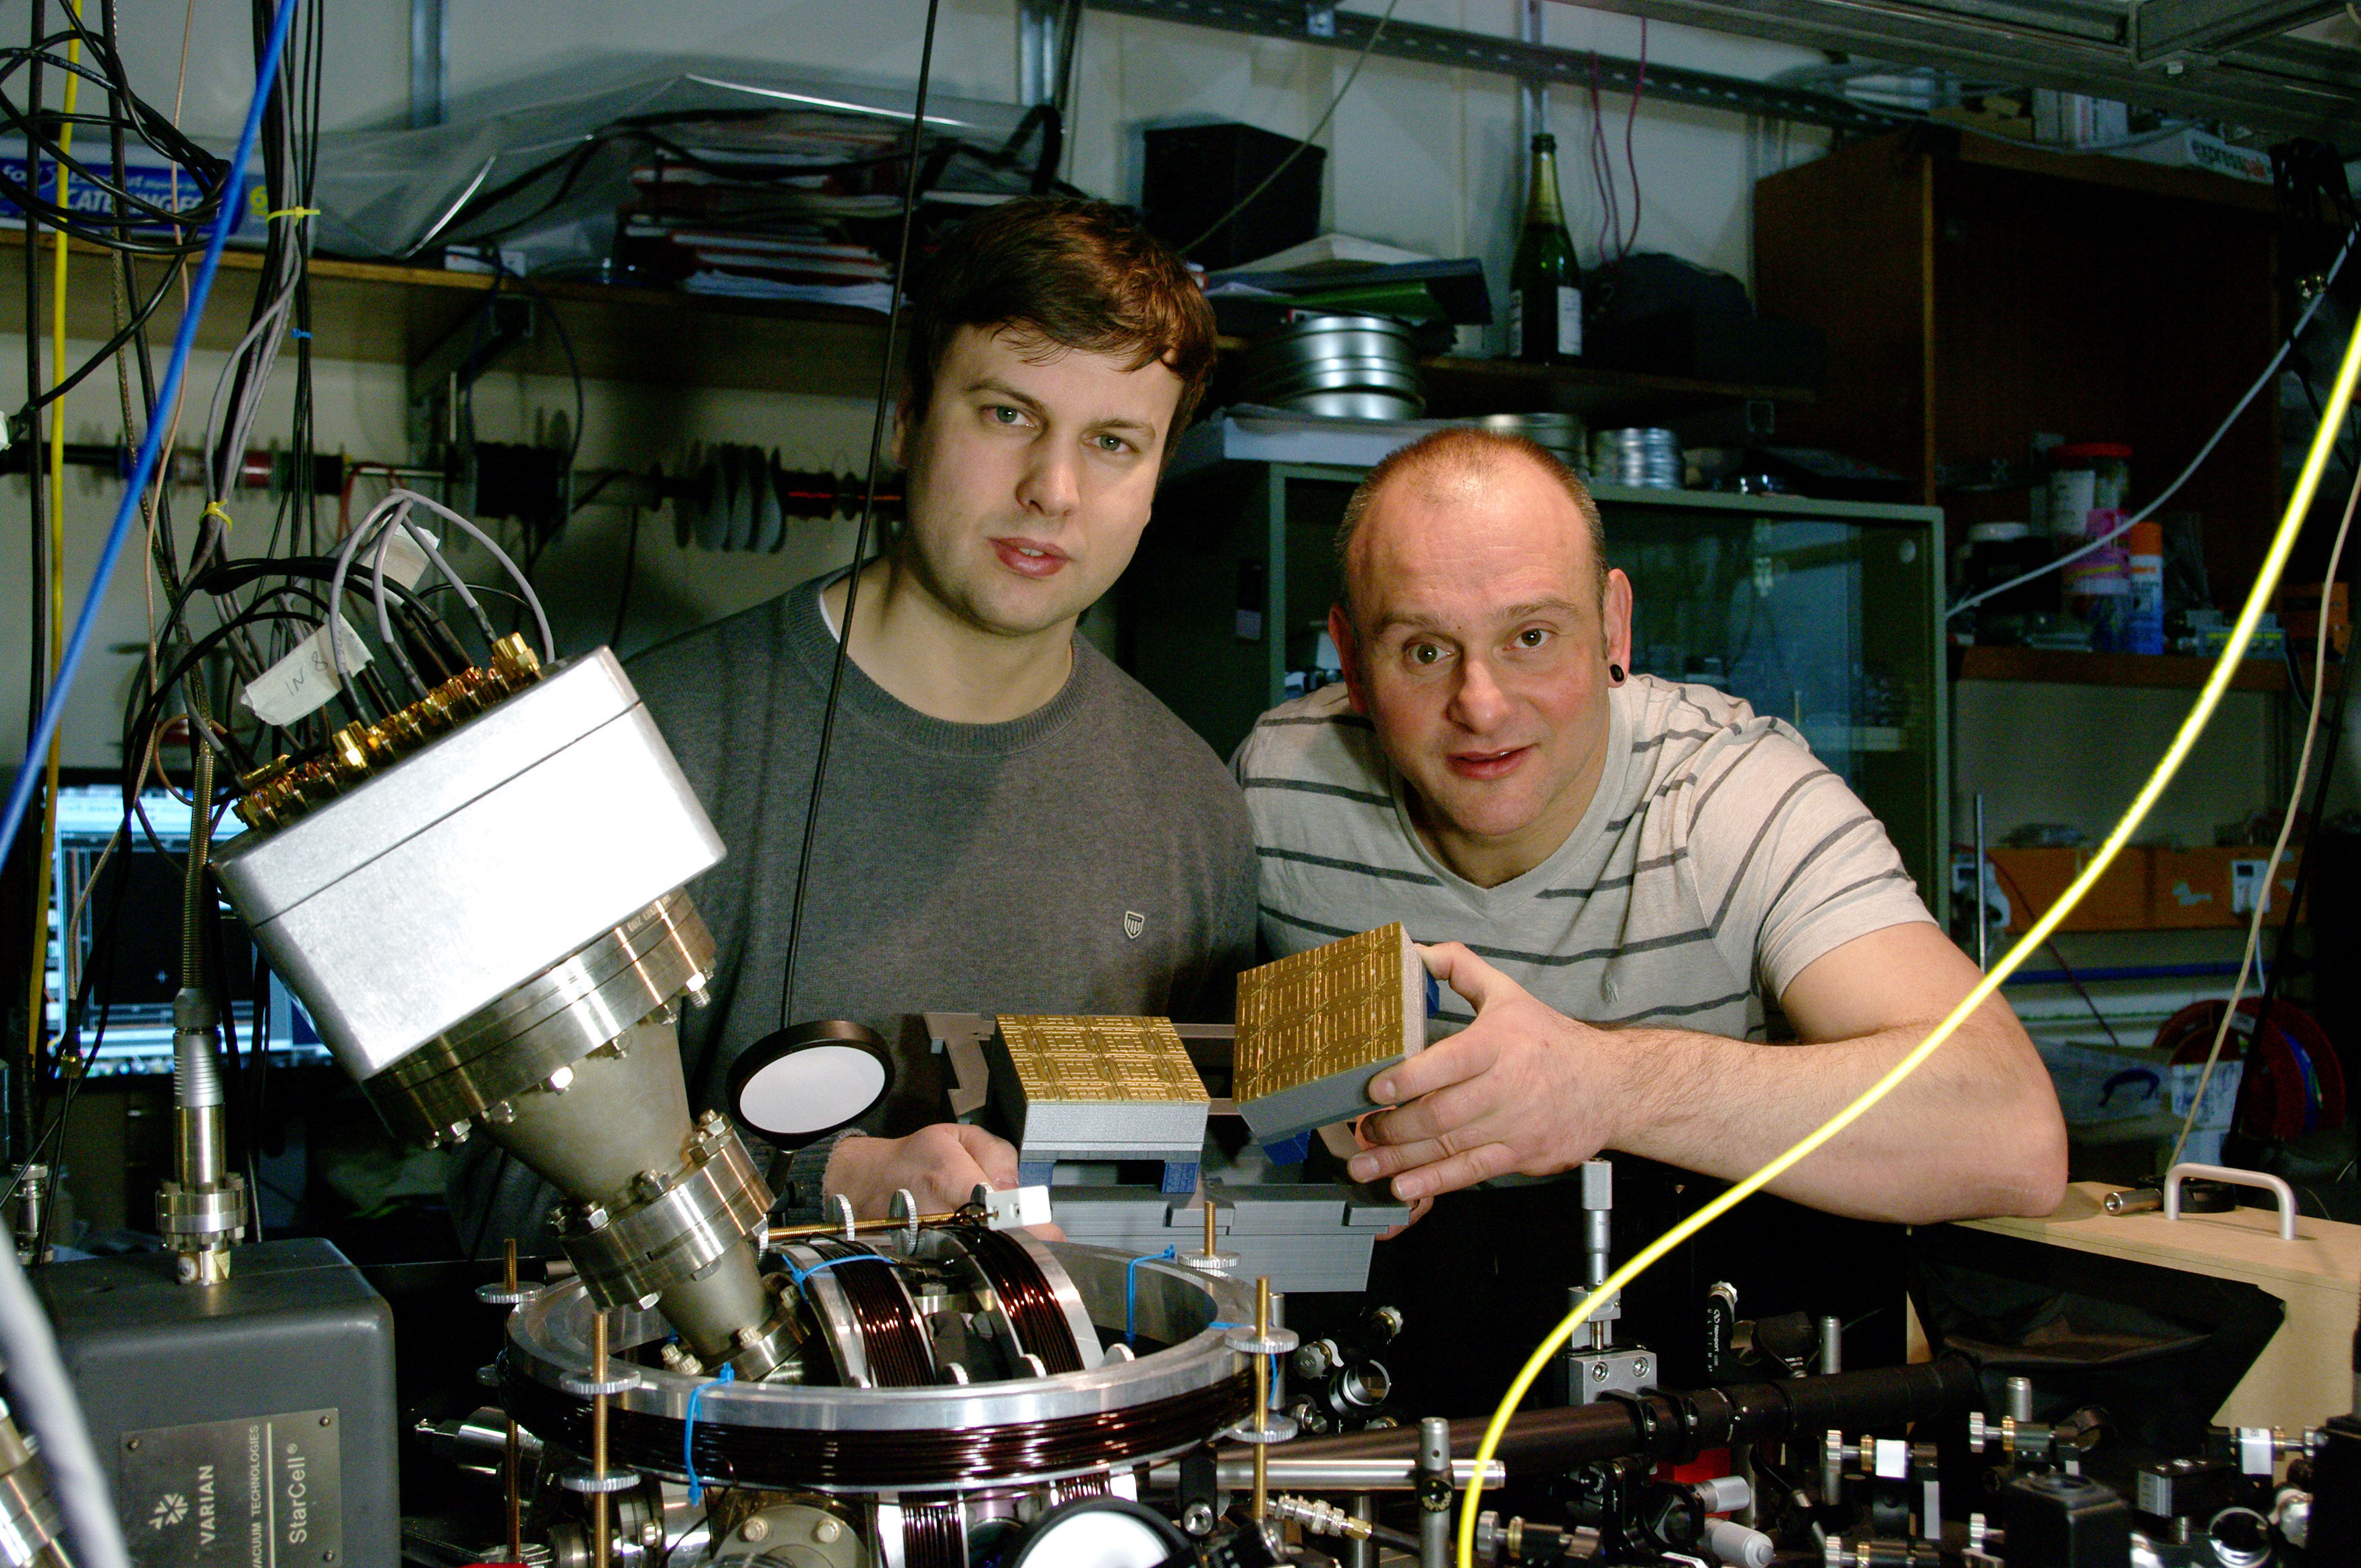 Professor Winfried Hensinger (right) and Dr Bjoern Lekitsch (left) with a quantum computer blueprint model behind a quantum computer prototype at the University of Sussex earlier in 2017